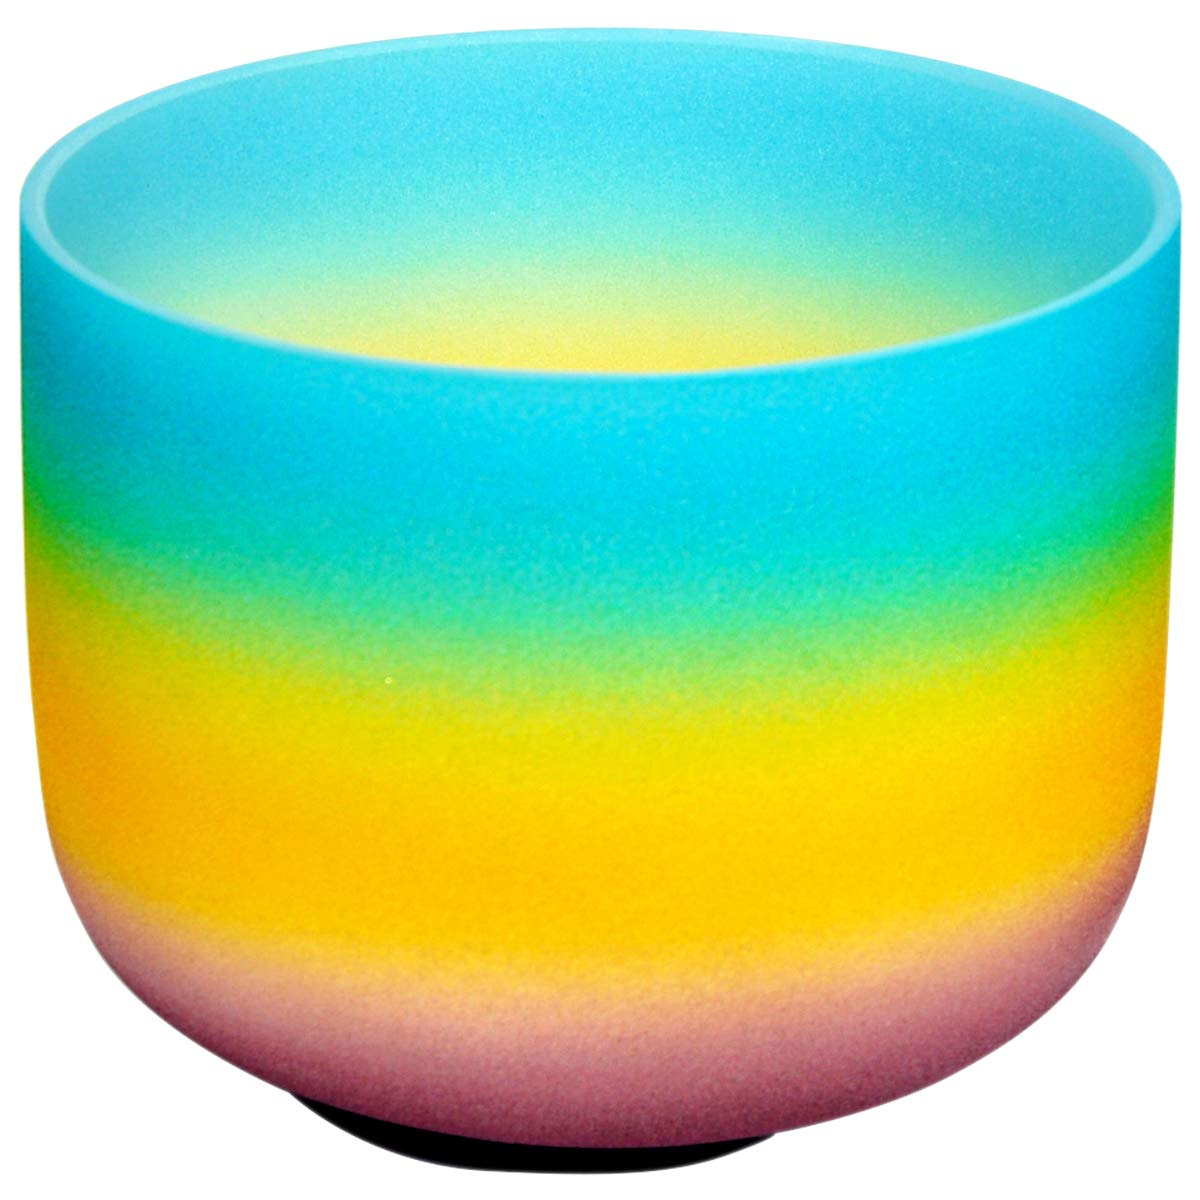 14 Inch 432Hz Rainbow Indigo Frosted Crystal Singing Bowl Note G Throat Chakra Best Quality Sound & Material (O Ring & Transparent Rubber Mallet Included)